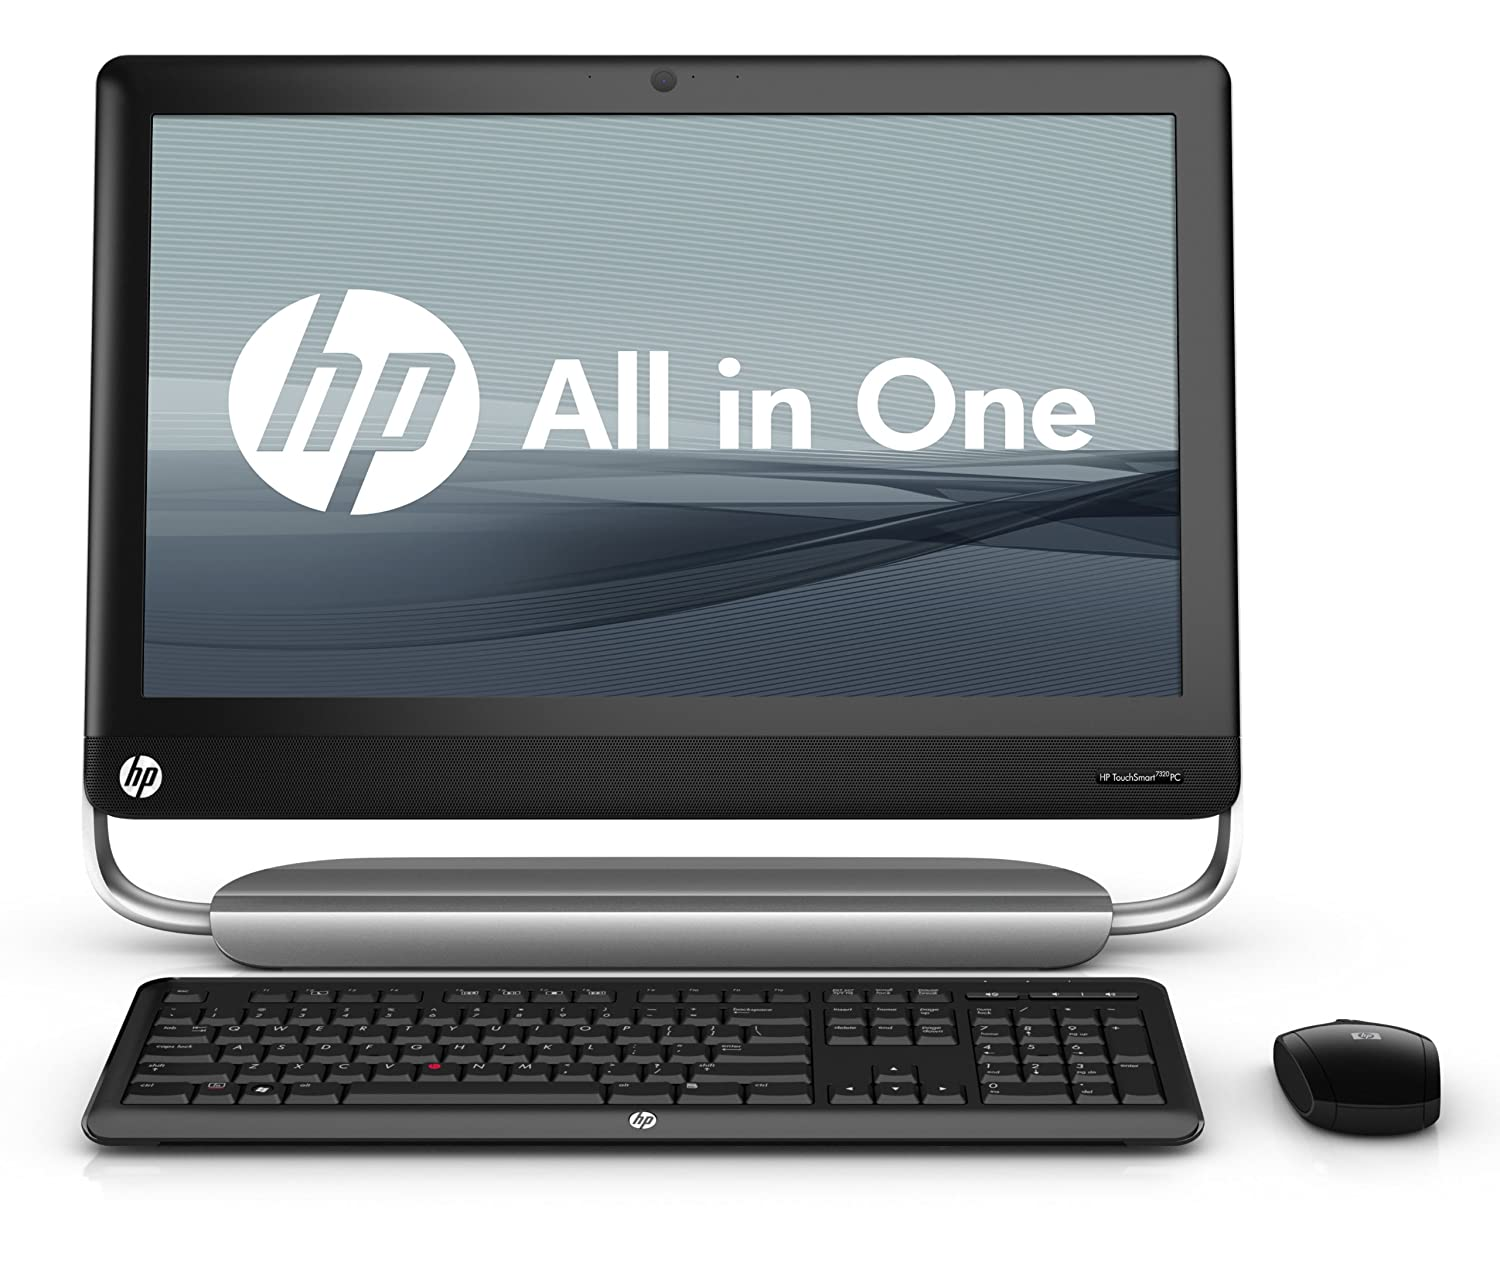 Gadgets For Your Home: HP TouchSmart 520-1030 Desktop Computer